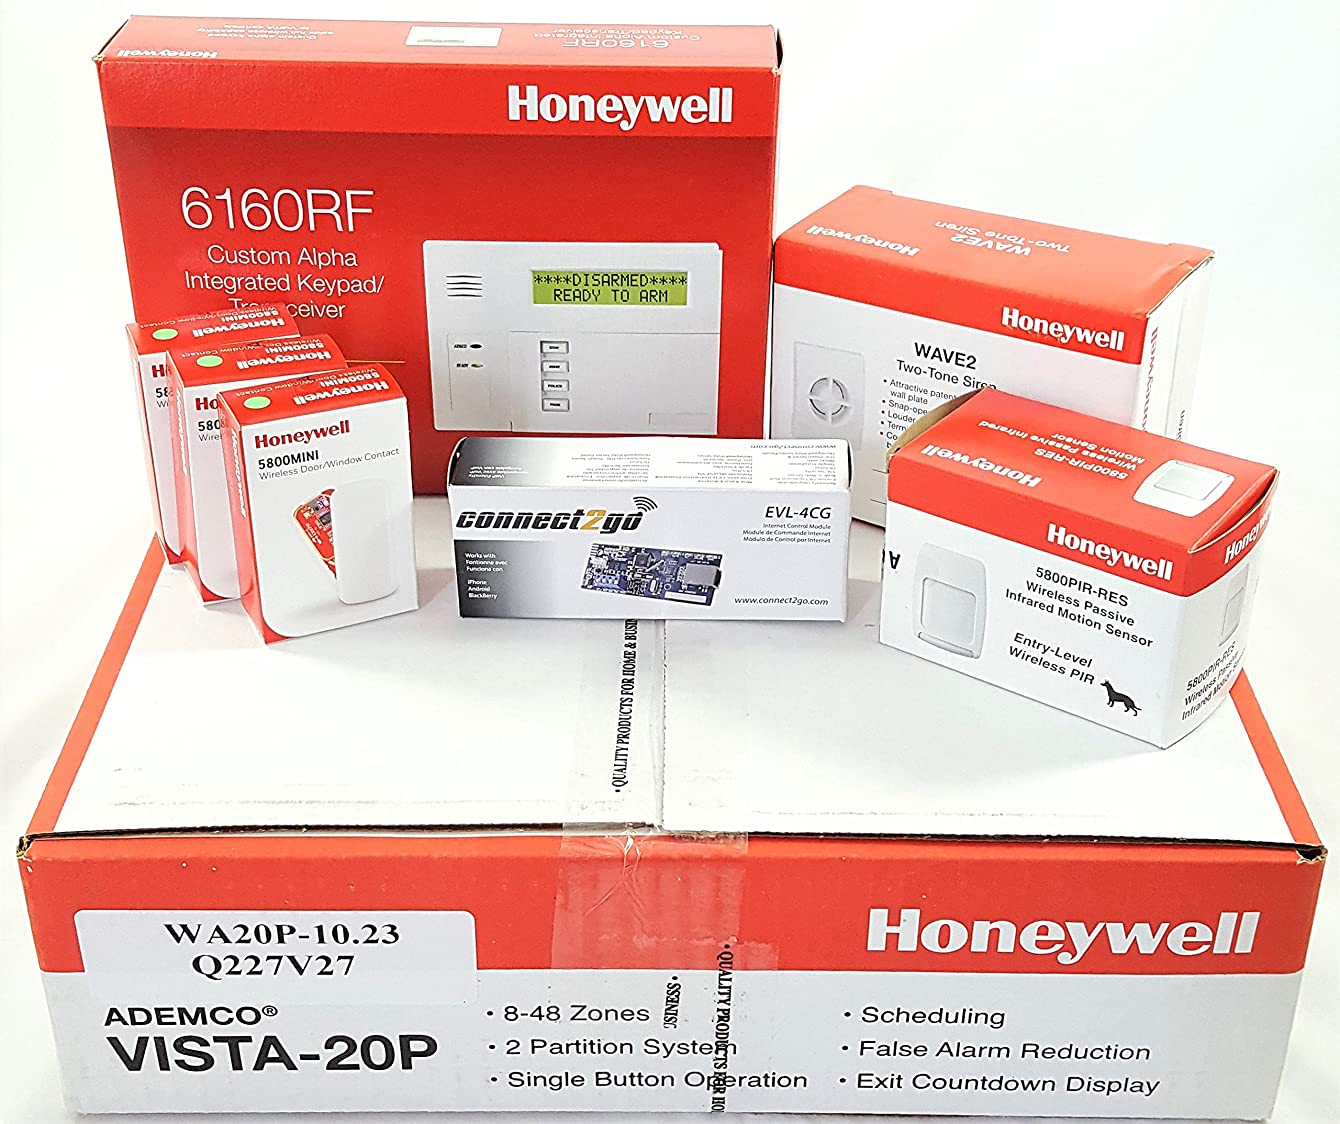 Honeywell Vista 20P Wireless Self Monitoring Kit with a 6160RF Keypad, One 5800PIR-Res Motion Sensor, One EVL-4CG EnvisaLink, Three 5800MINI Door/Window Contacts, and a WAVE2 Siren